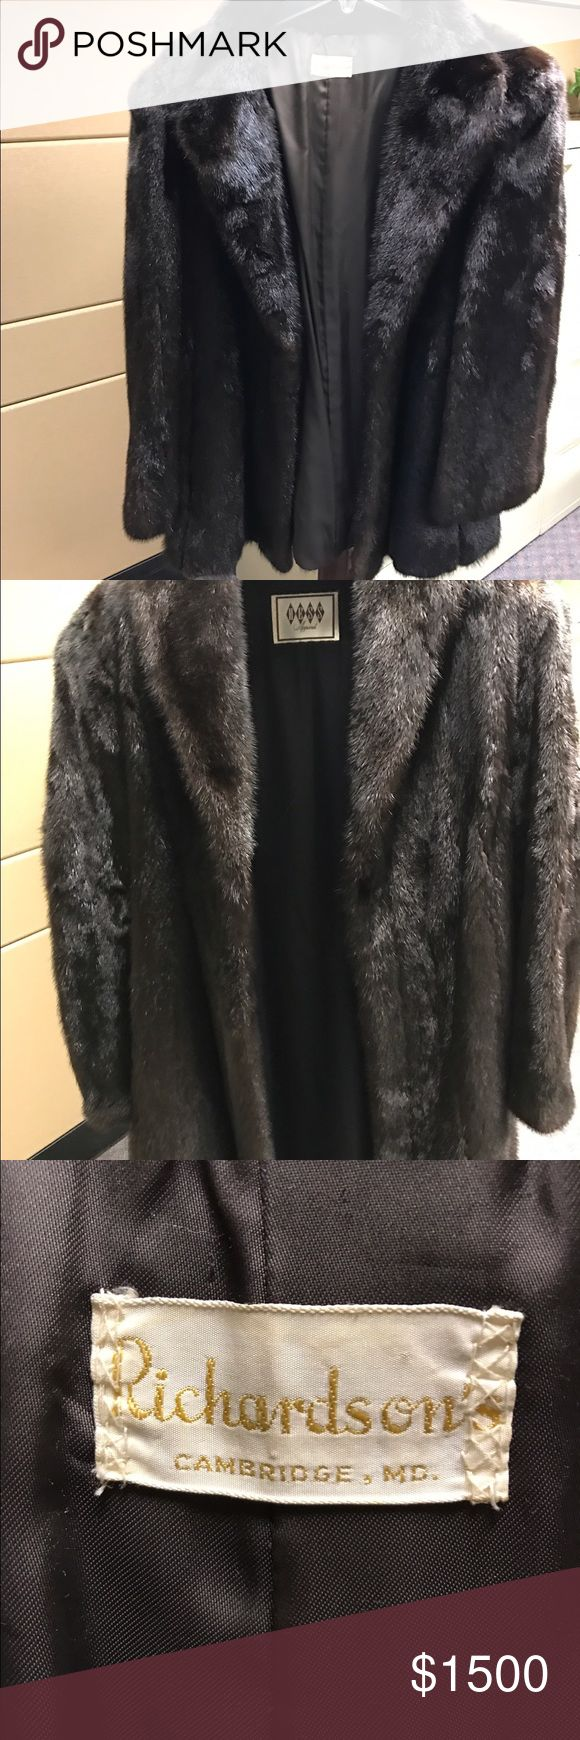 """2 mink coats for sale. One long, one short 2 genuine mink coats for sale. Serious inquiries only. Wire transfer, or local cash only. One jacket is long and is tailored for a female up to 5'9"""". The short jacket is tailored for a female up to 5'9"""". Great jackets in pristine condition. All Reasonable offers will be taken into consideration. Appraised a little over a year ago for around 3,000. Jackets & Coats"""